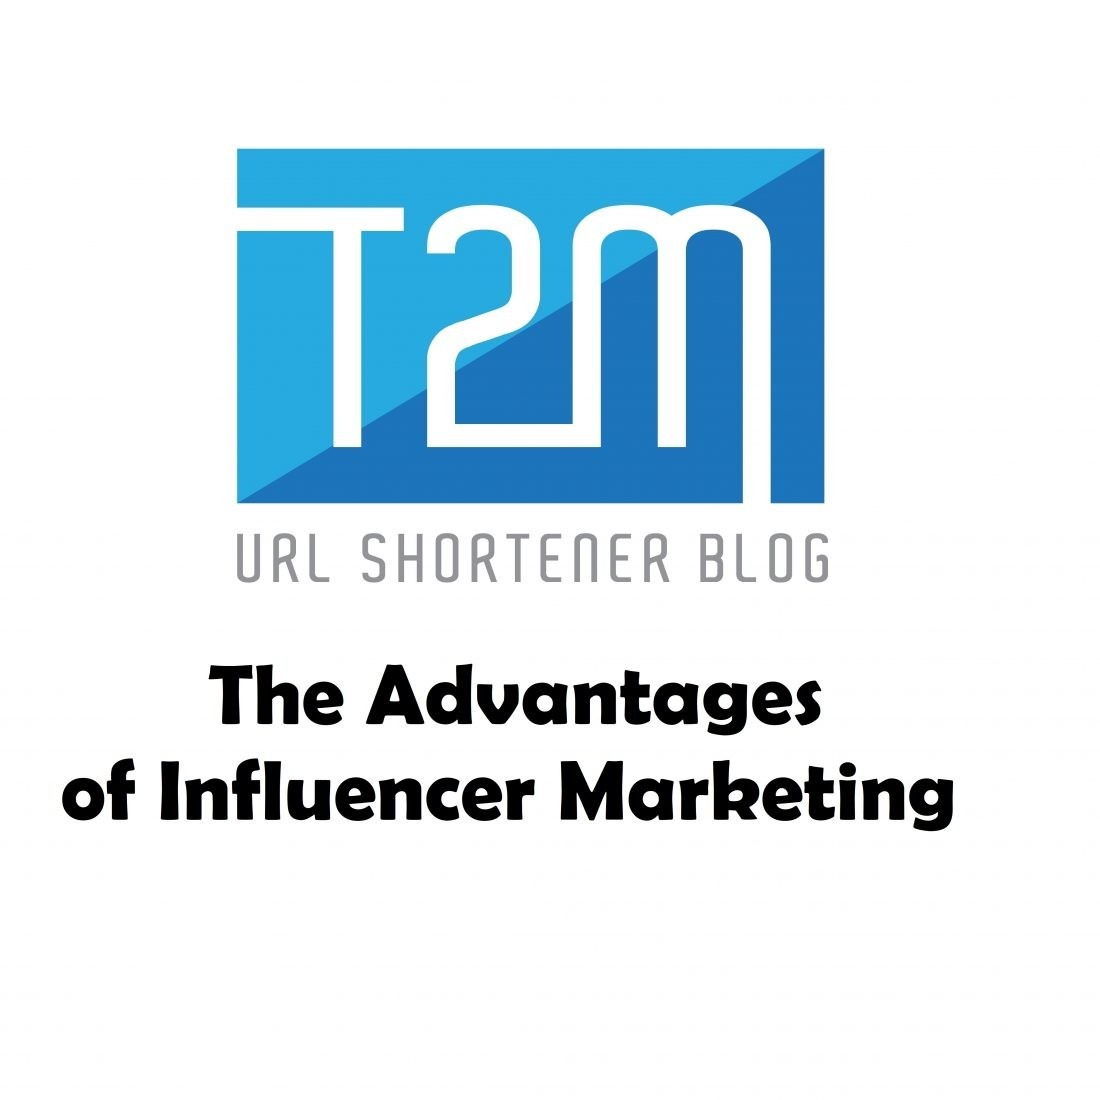 What Are The Advantages of Influencer Marketing?